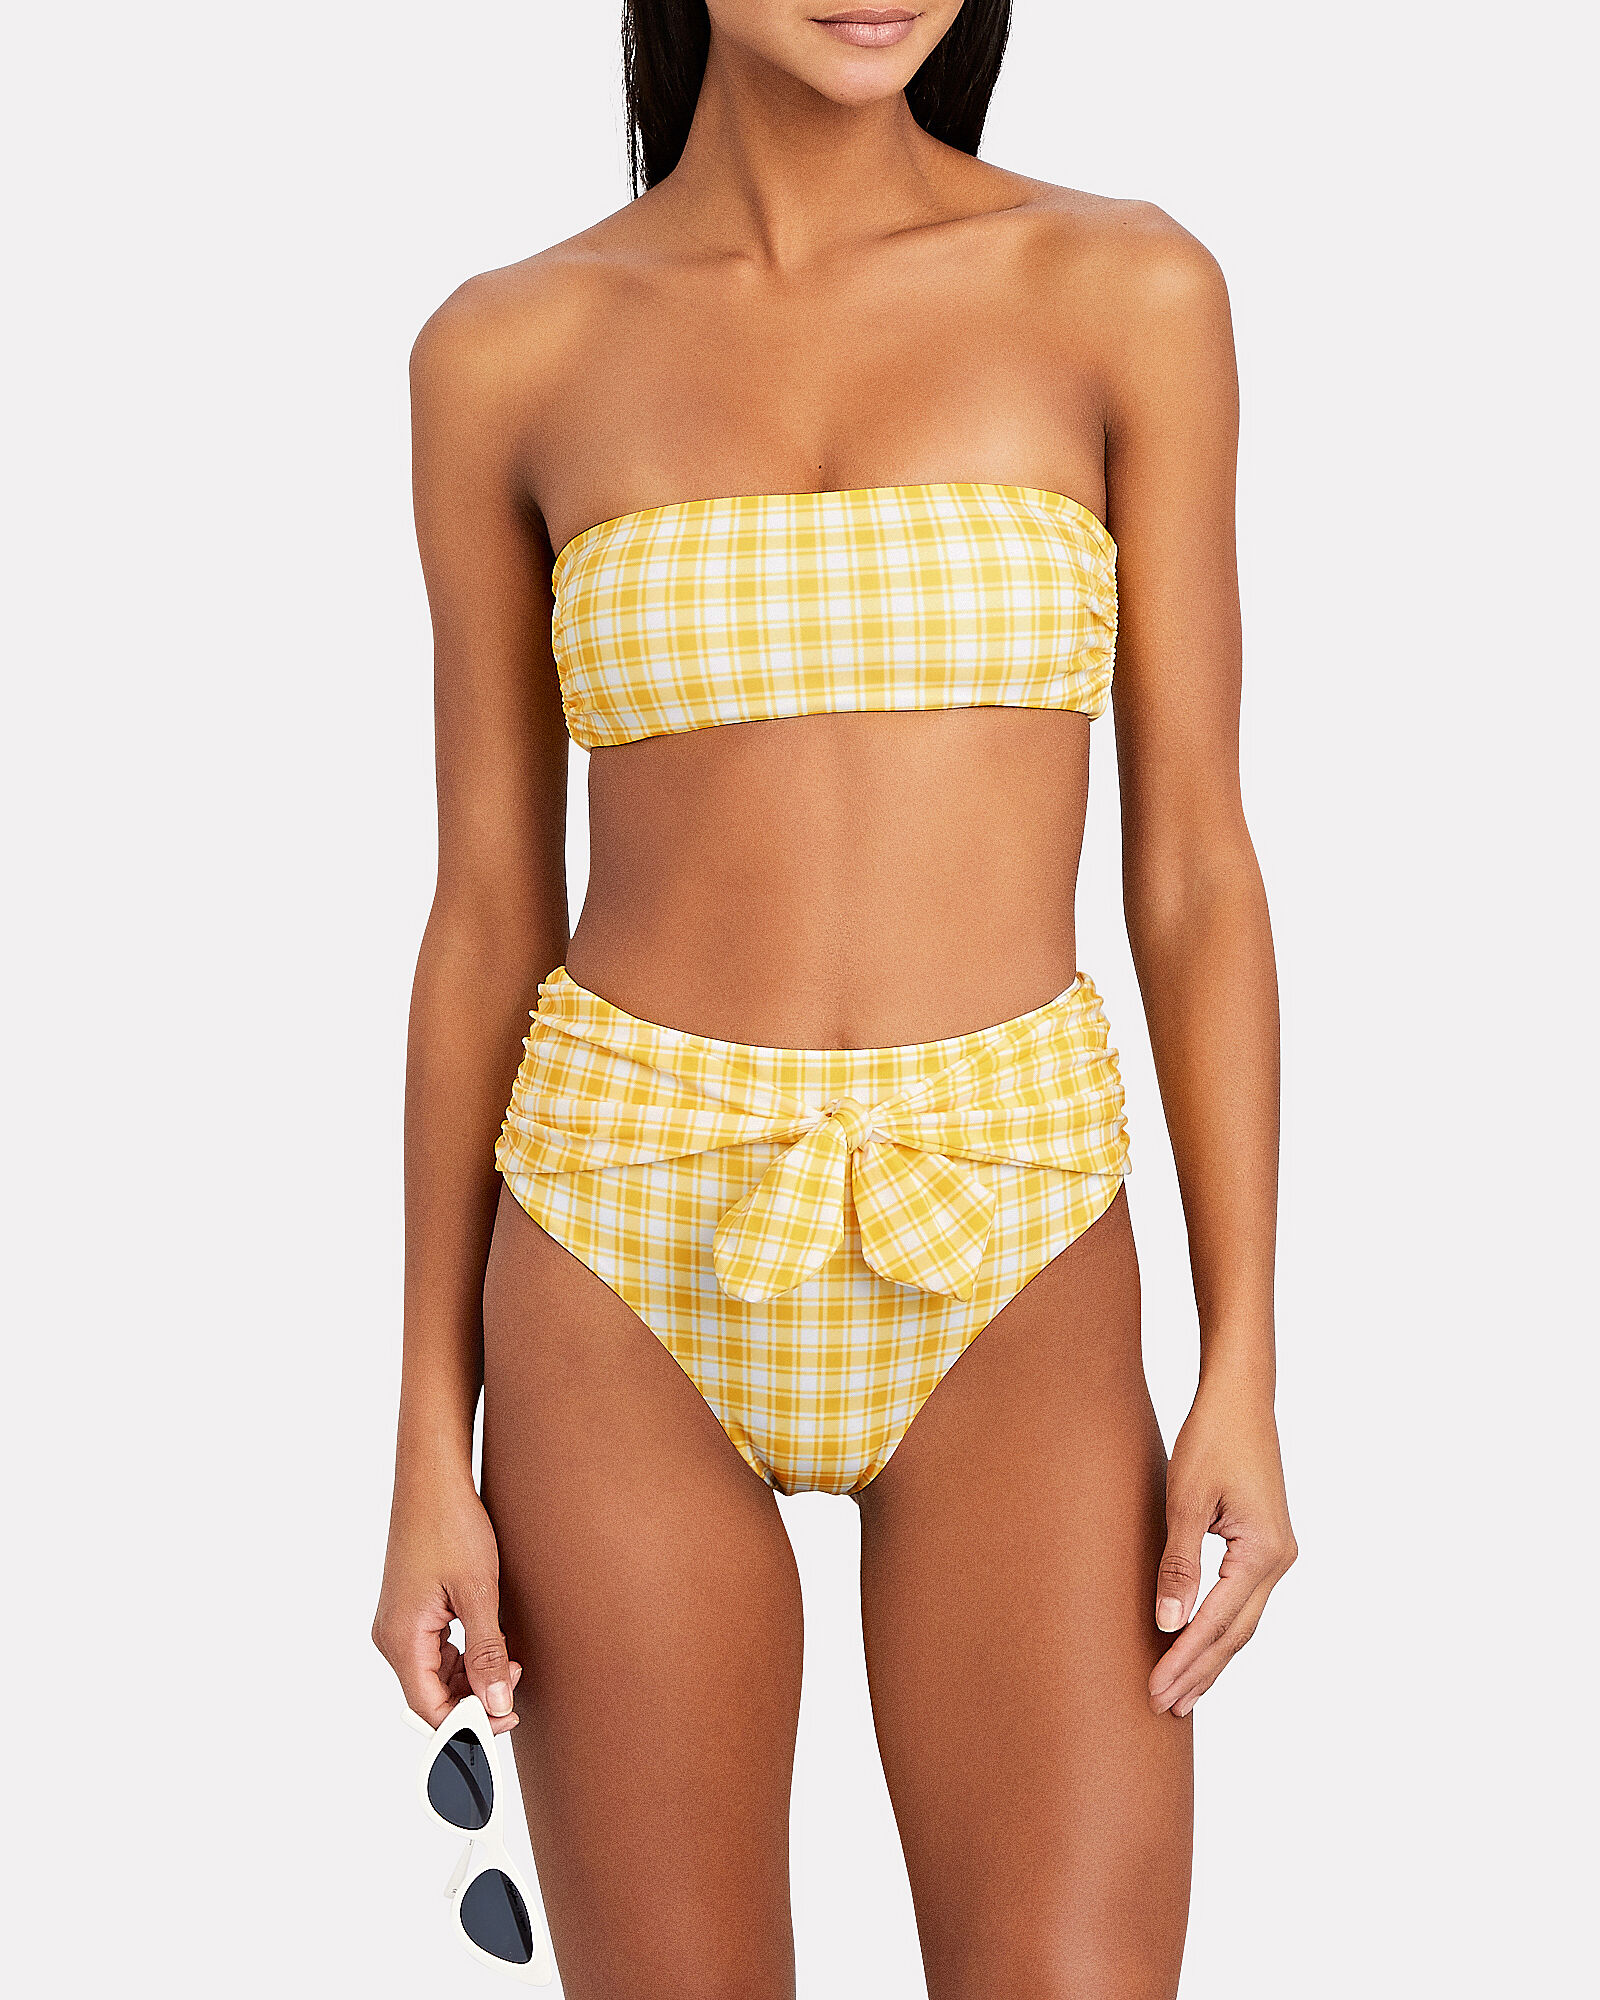 Azoia Gingham Tie Bikini Bottoms, YELLOW, hi-res